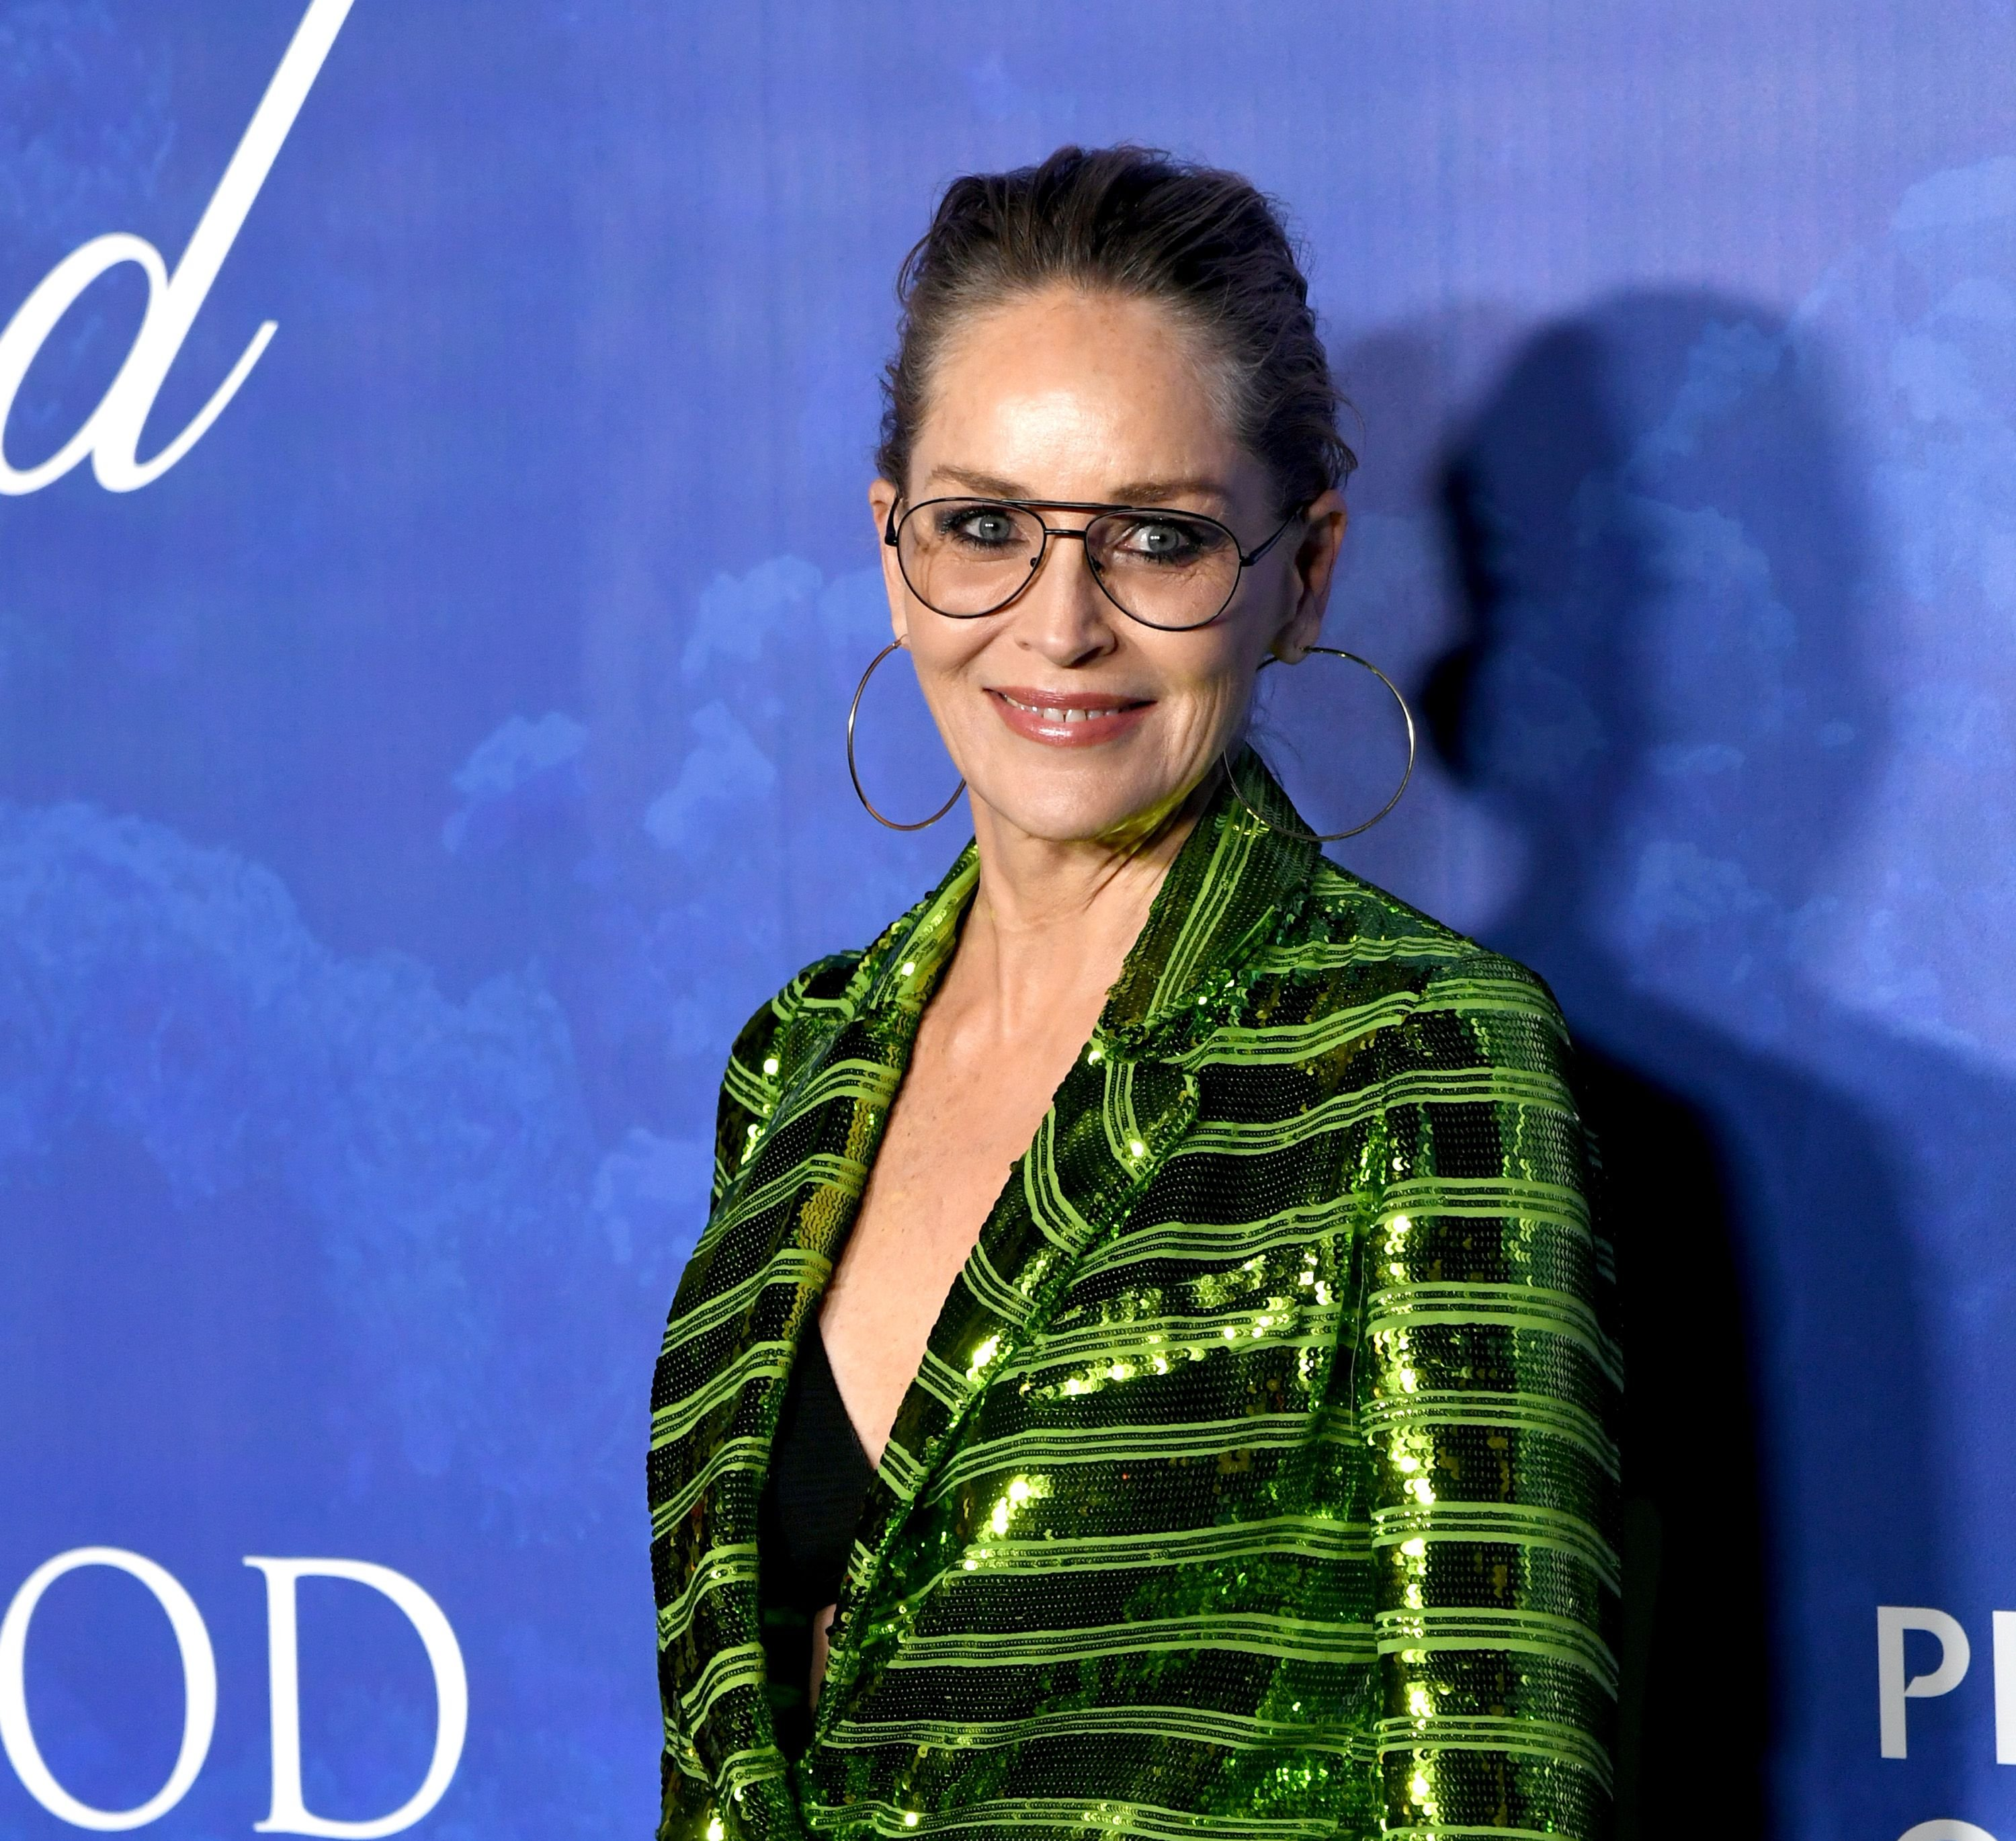 Sharon Stone at the 2020 Hollywood for the Global Ocean Gala Honoring HSH Prince Albert II Of Monaco on February 06, 2020 | Photo: Getty Images